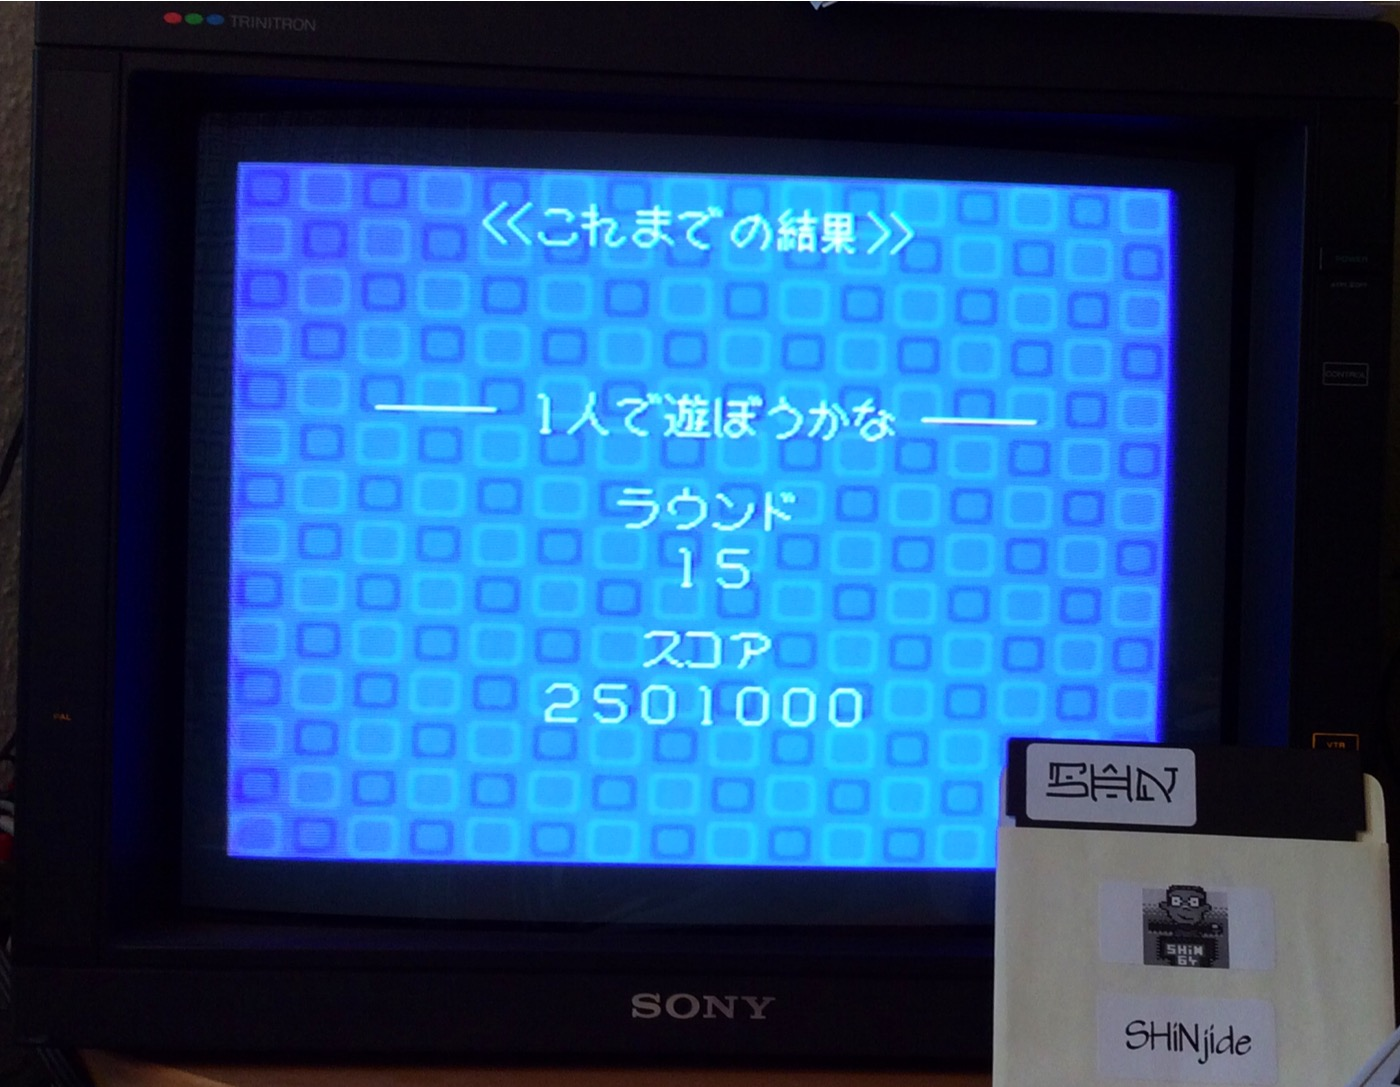 SHiNjide: Puzzle Bobble (3DO) 2,501,000 points on 2015-01-16 11:43:28